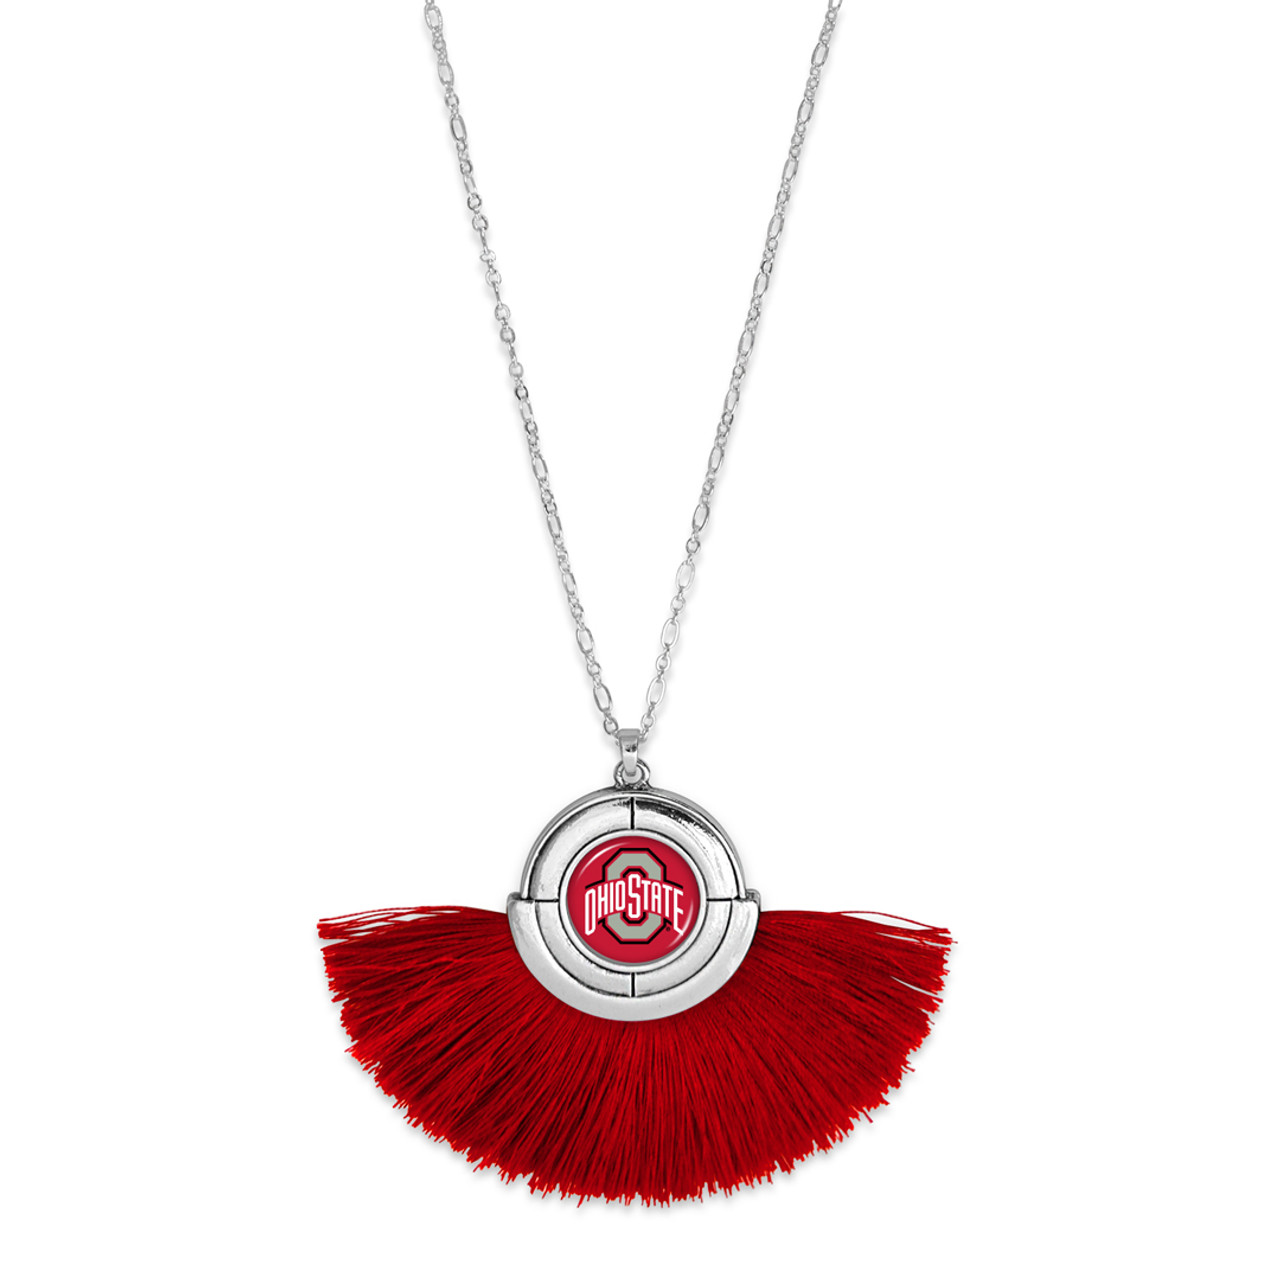 Ohio State Buckeyes Necklace- No Strings Attached